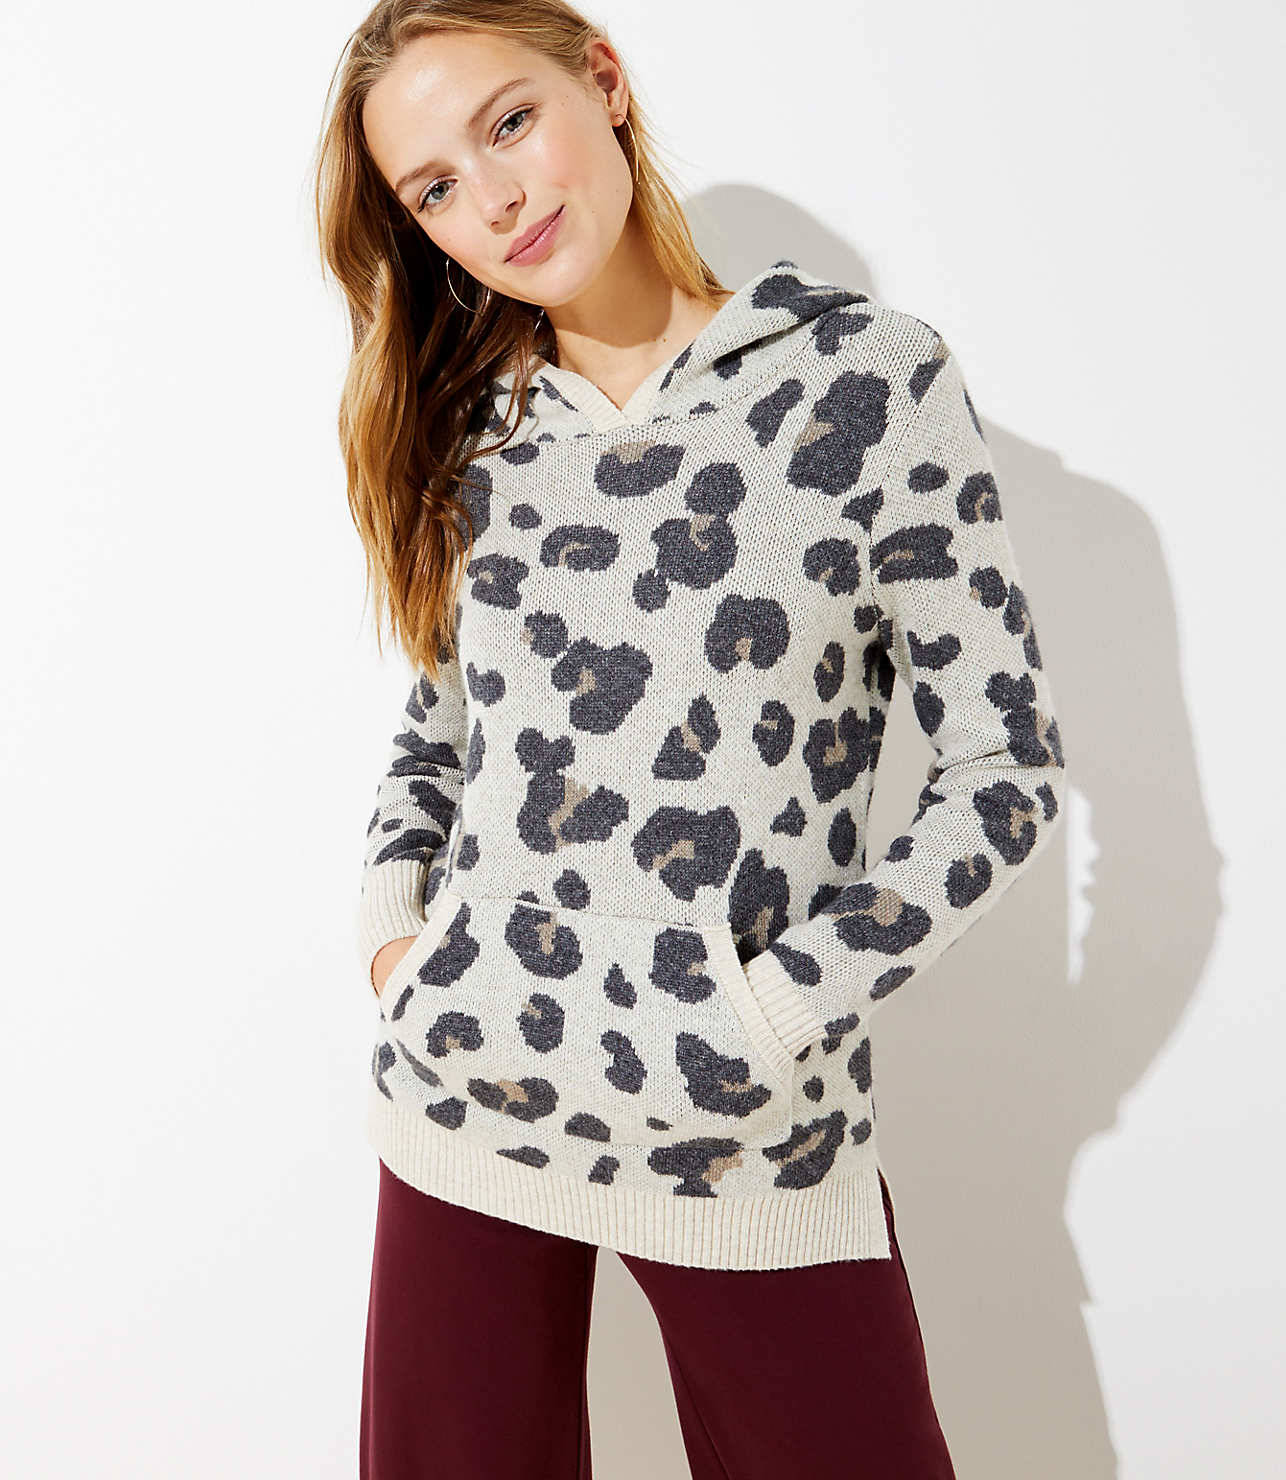 best selection of super quality latest style of 2019 Leopard Print Hoodie Sweater | LOFT